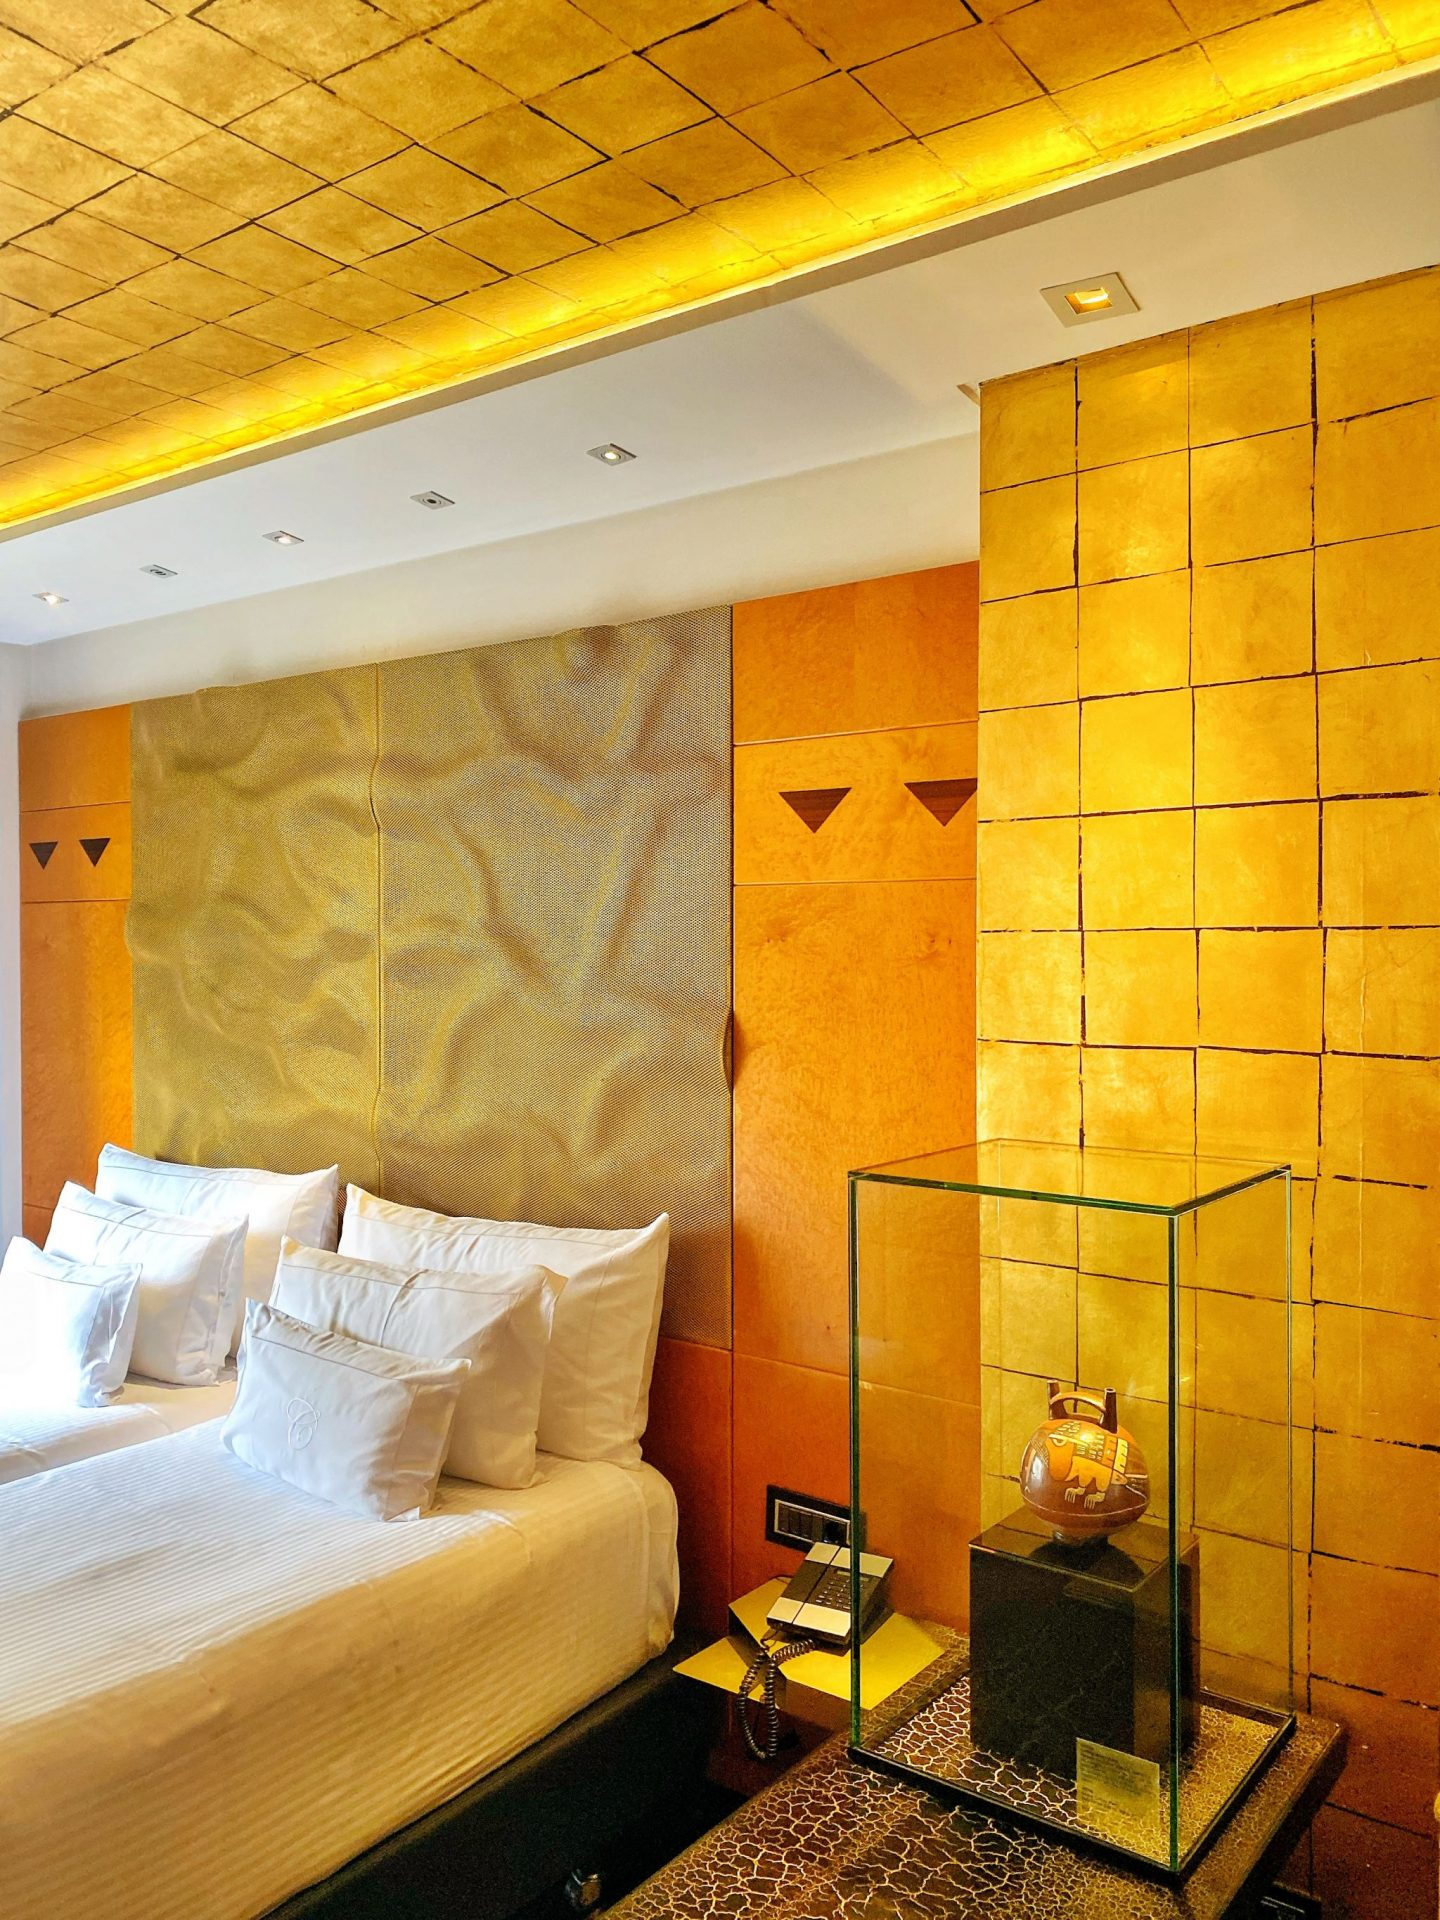 Bedrooms at Hotel Claris